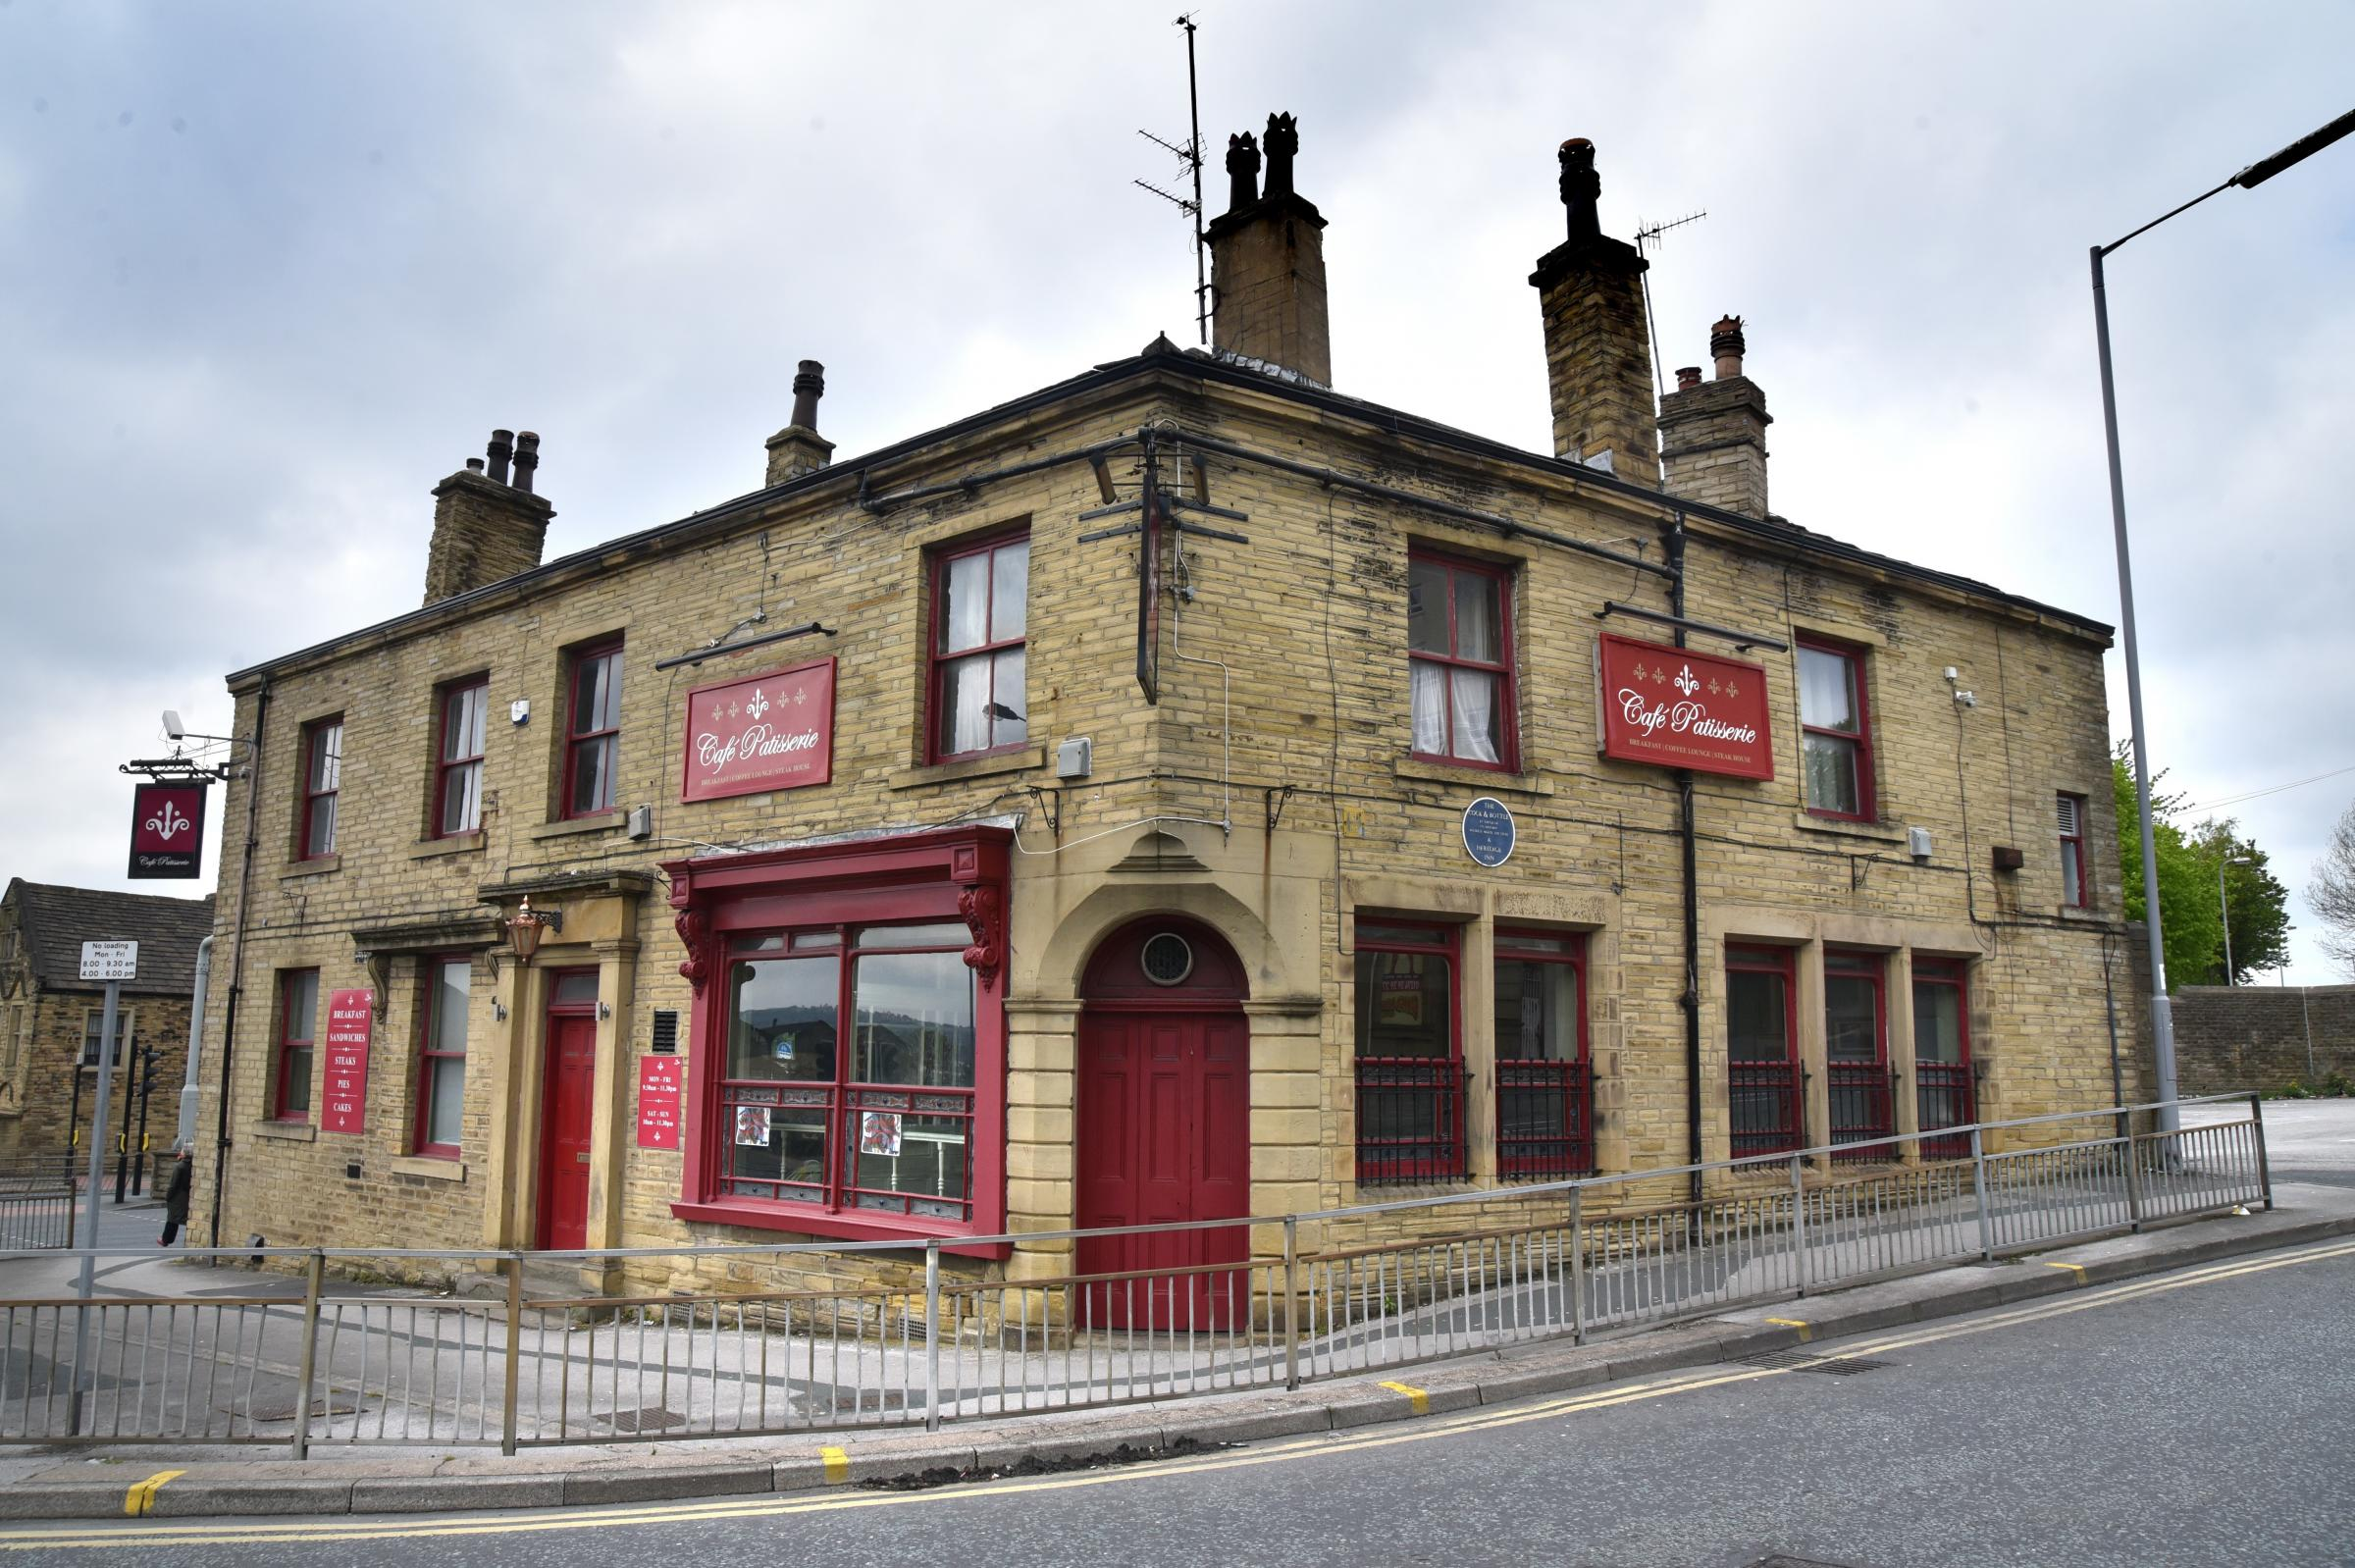 Housing plans for upper floors of historic pub approved